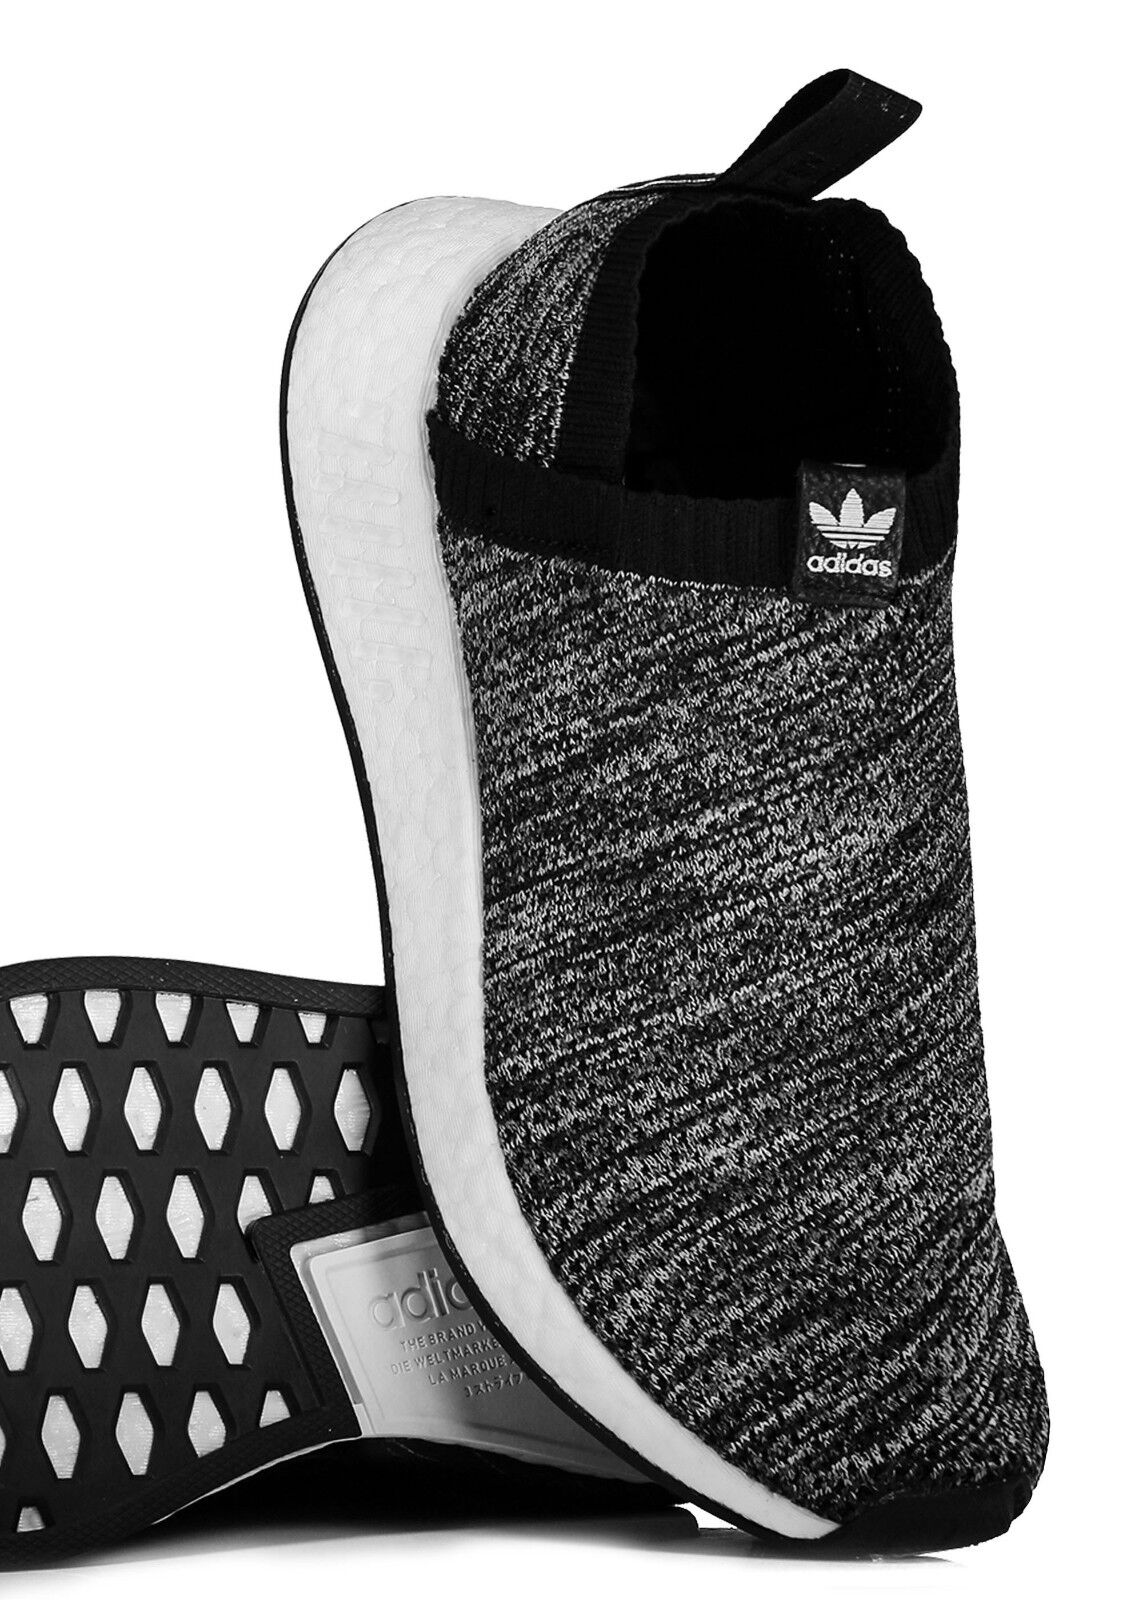 Adidas Originals NMD CS2 PK PK PK UAS Trainers UK 8.5 Limited Edition NEW BOXED B&W 78a73c